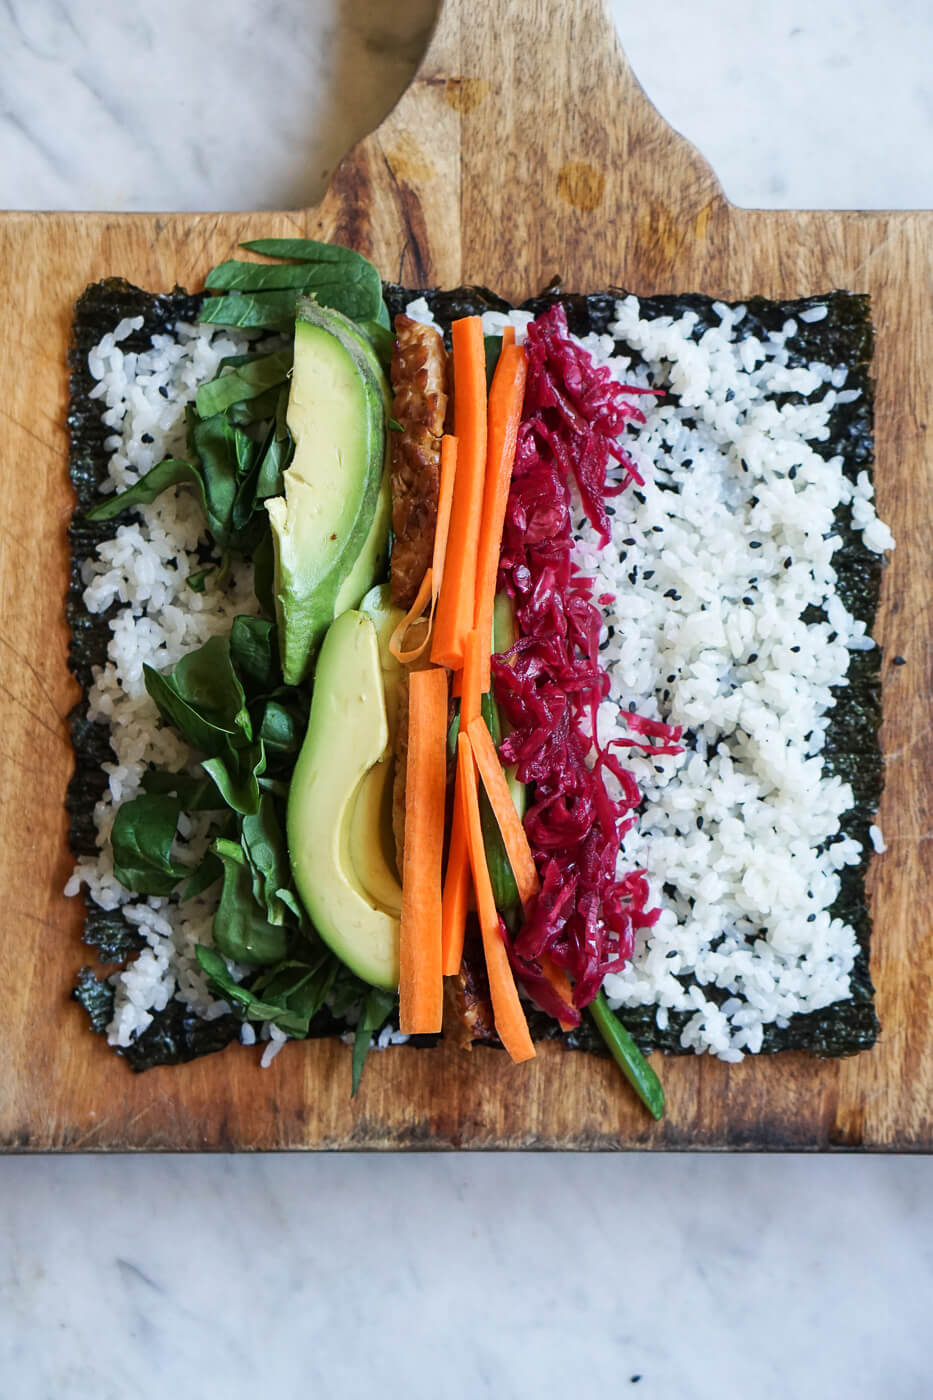 A piece of nori is topped with sushi rice and vegetables.